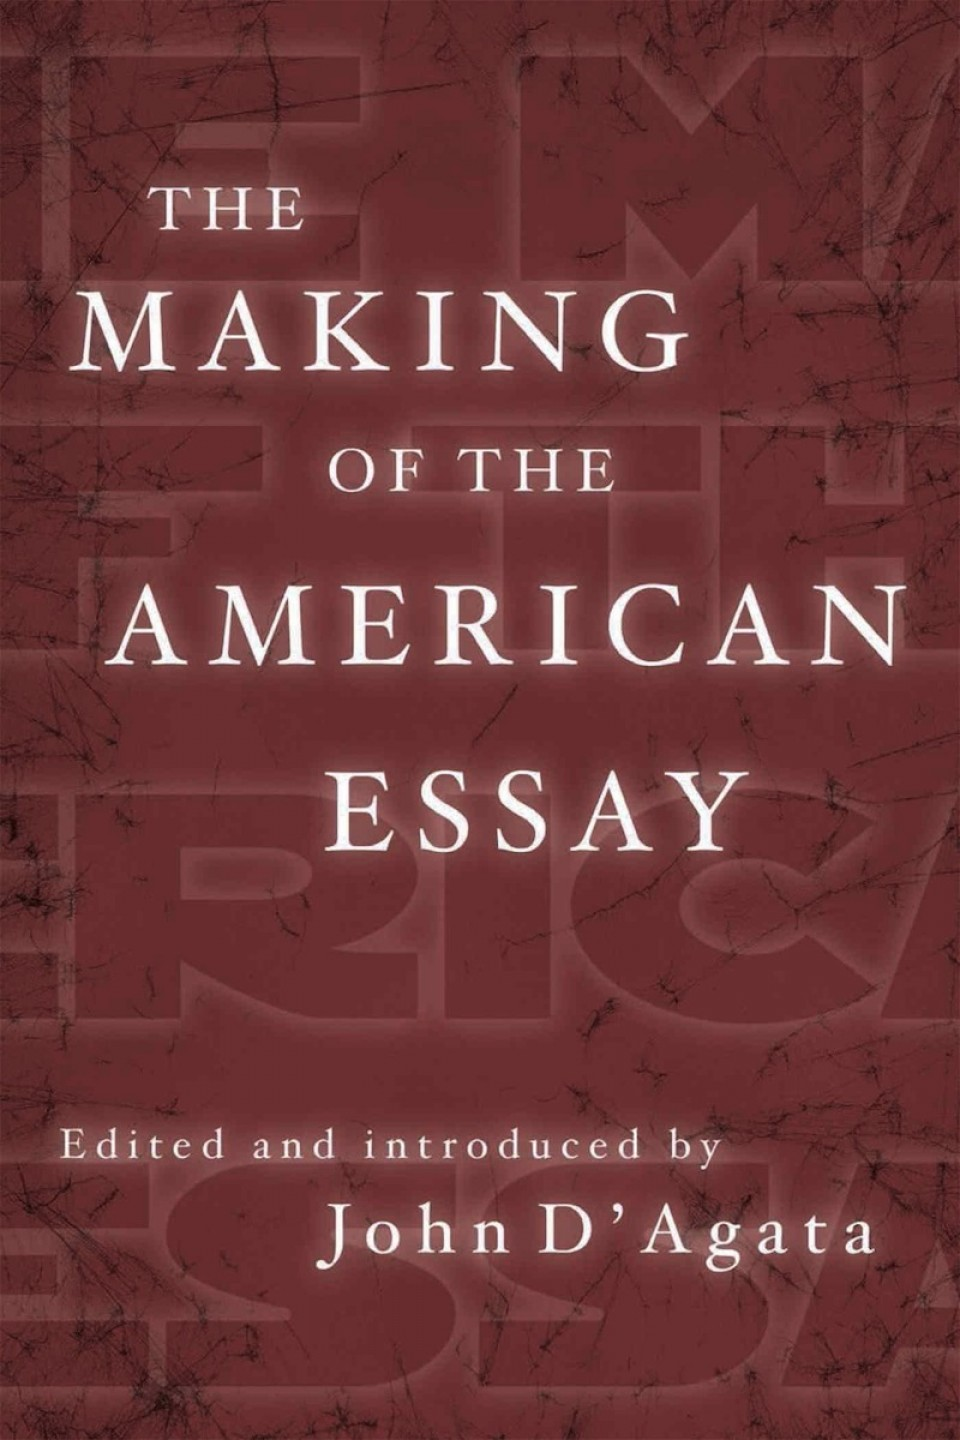 003 Essay Example Makingamericanessay John Stirring D Agata D'agata The Next American Pdf 960